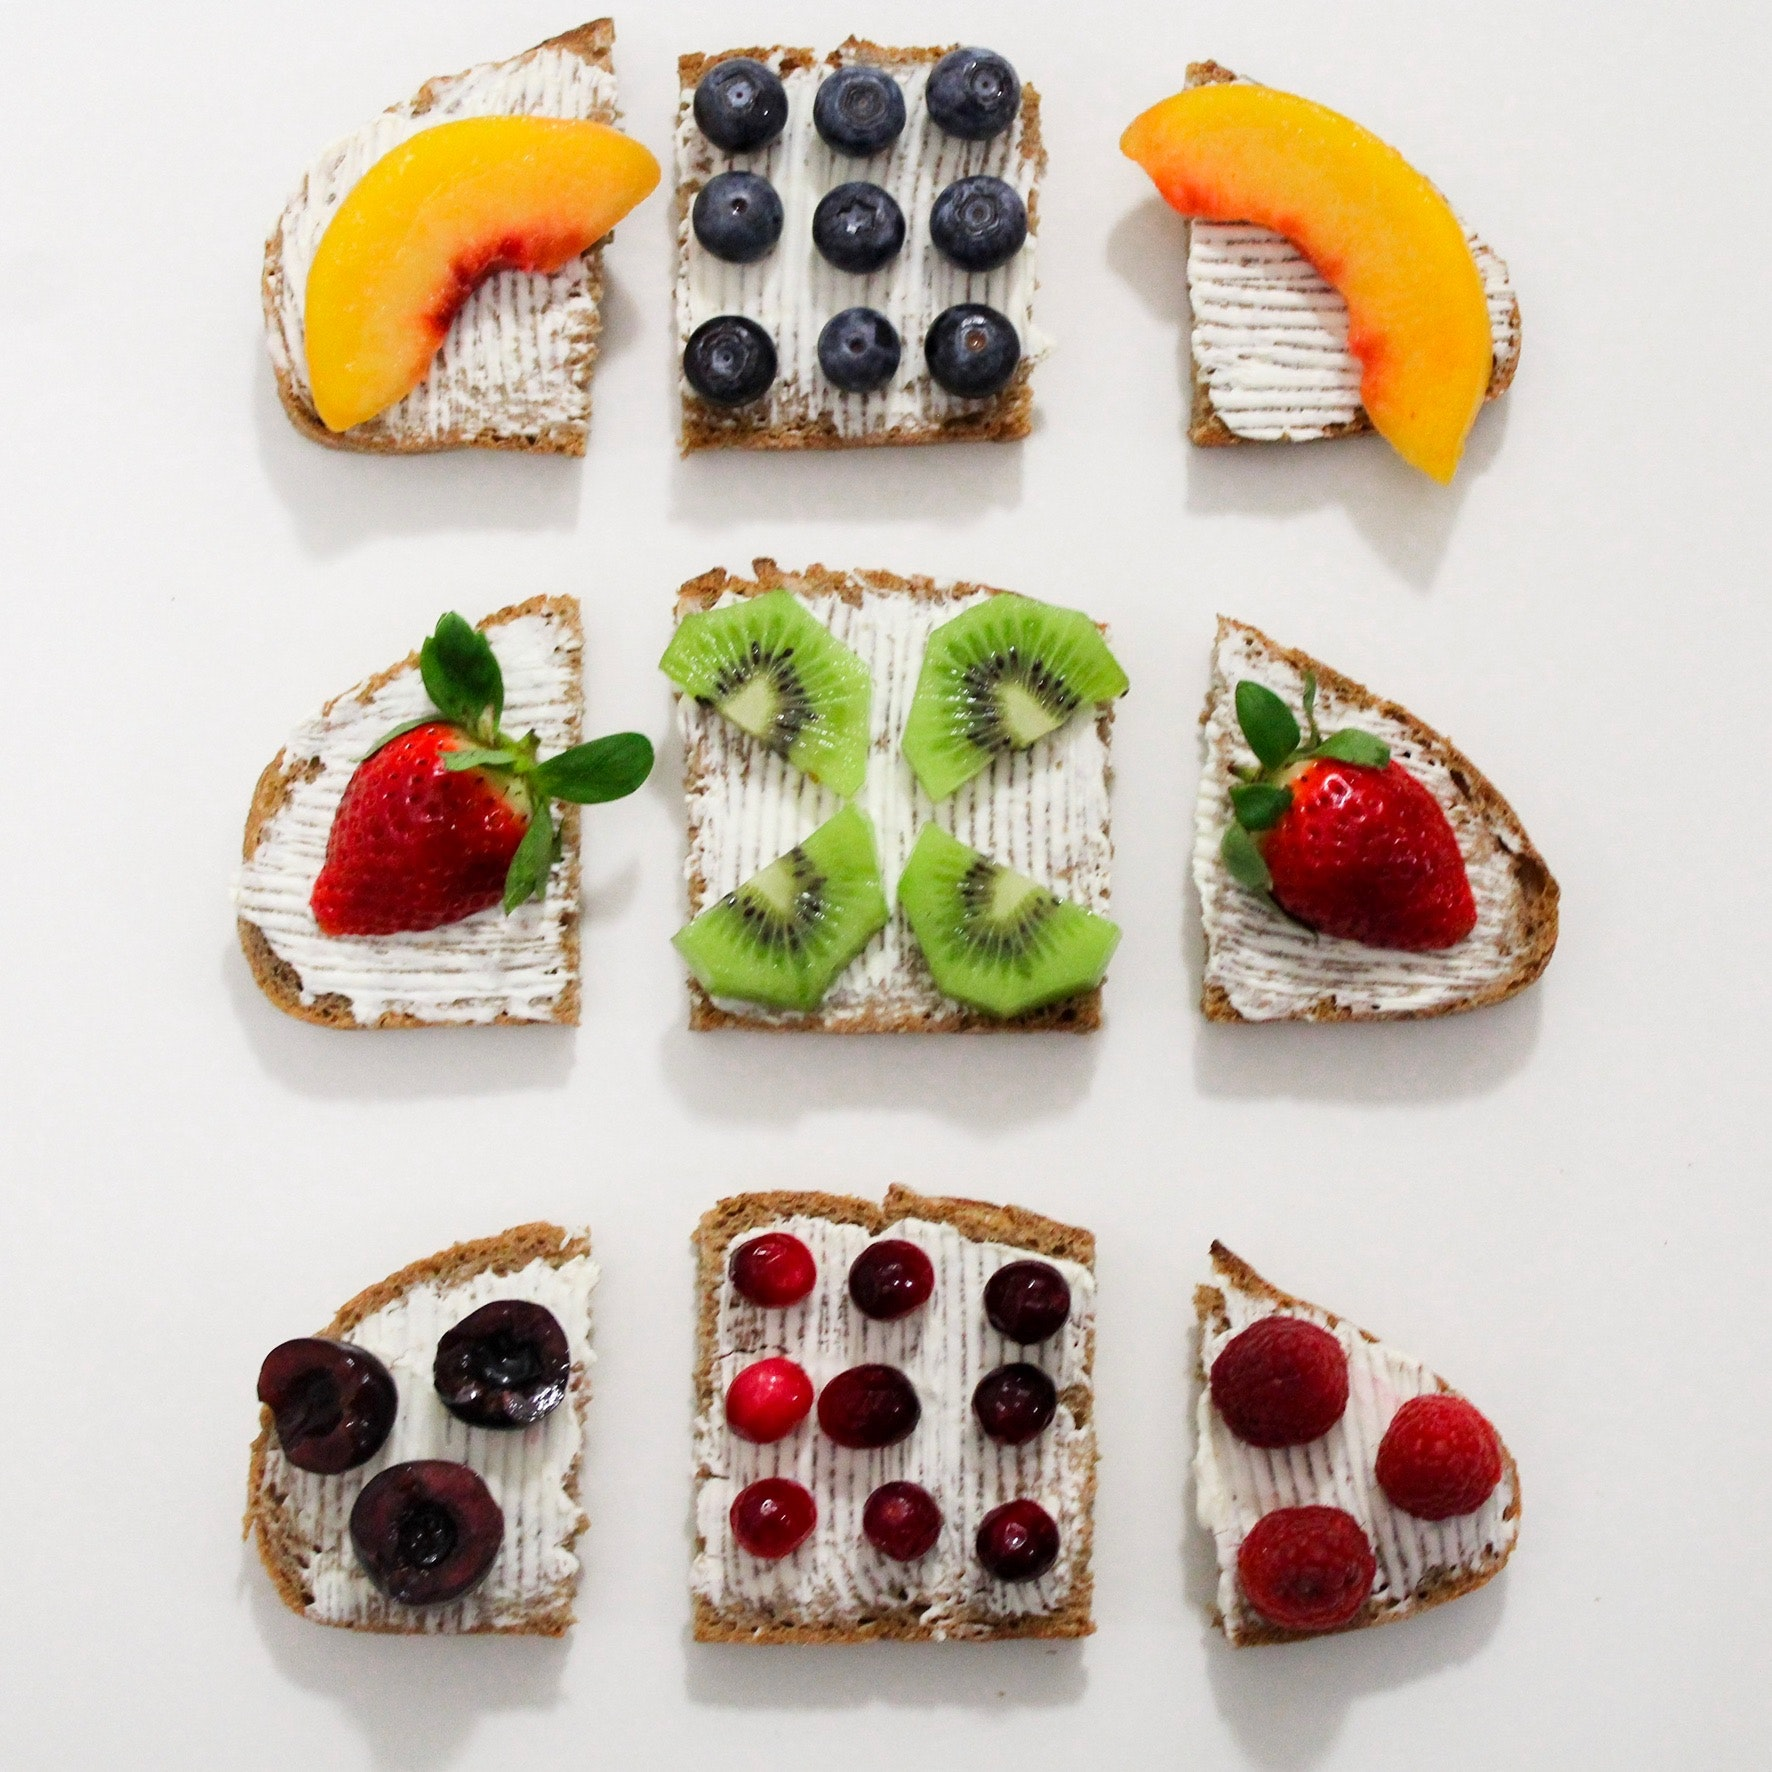 Baked breads with fruit toppings photo